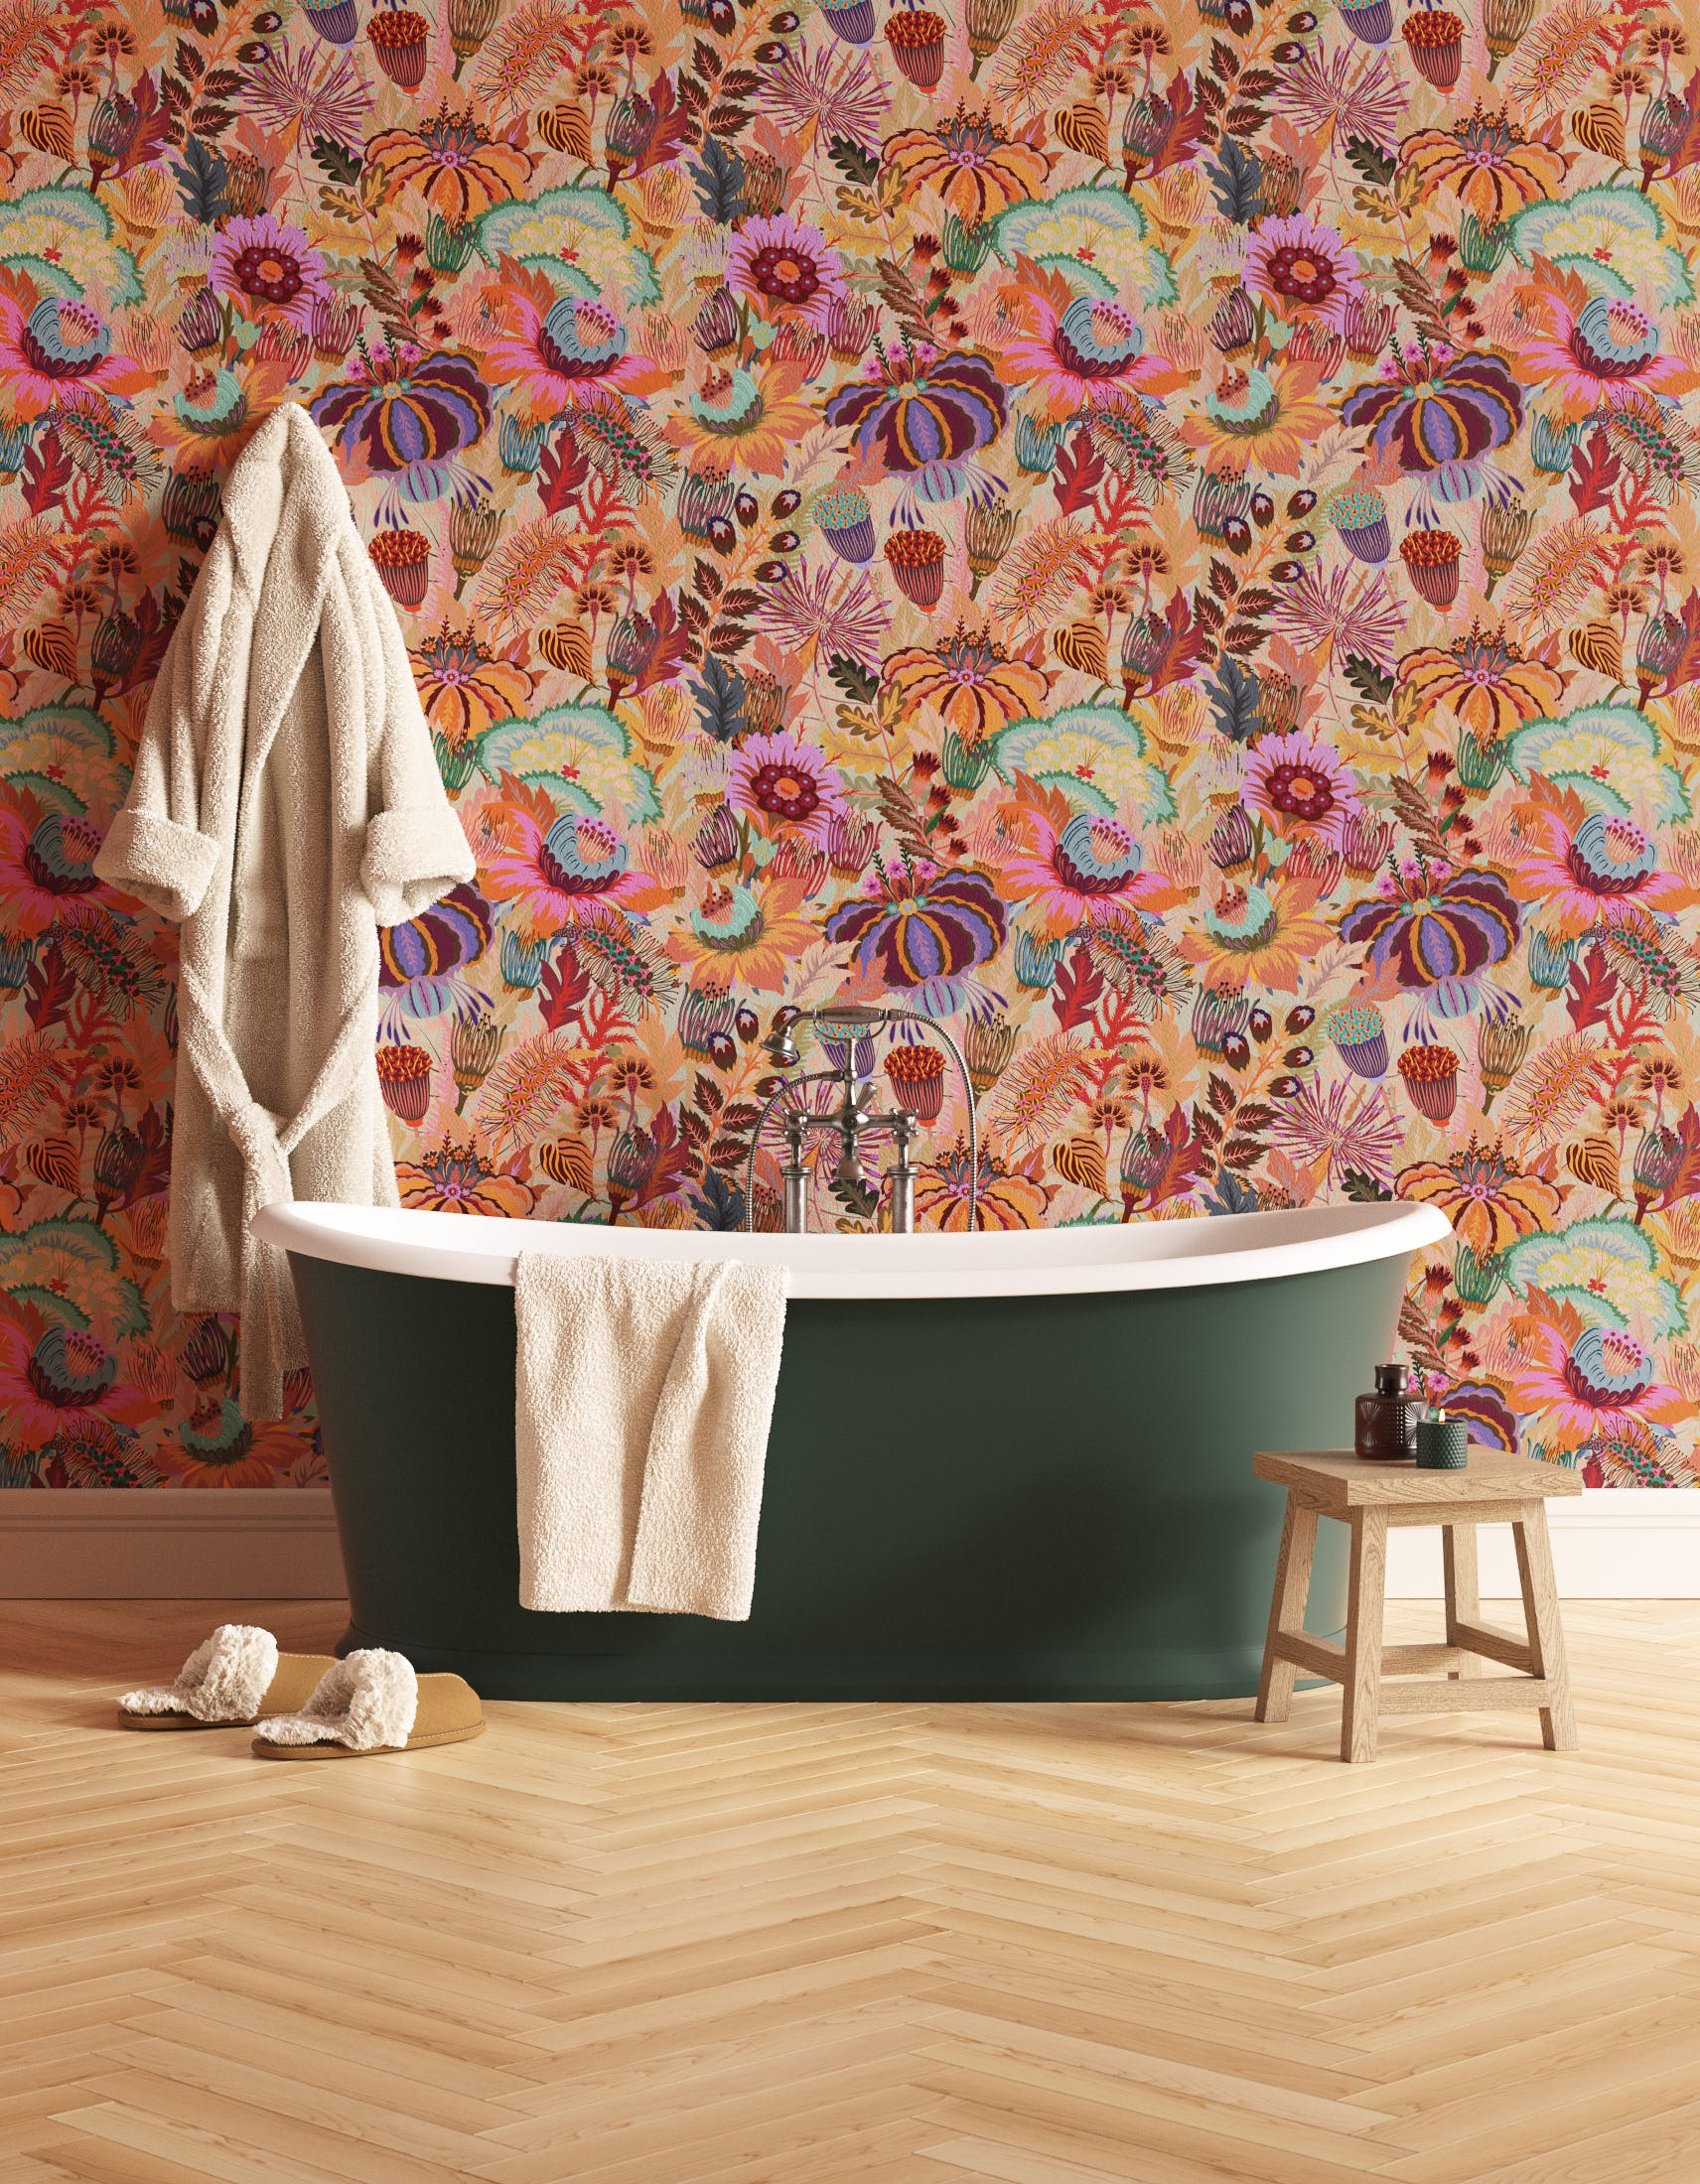 Bathroom decorated with Lick Mars Meadow 02, a orange floral wallpaper